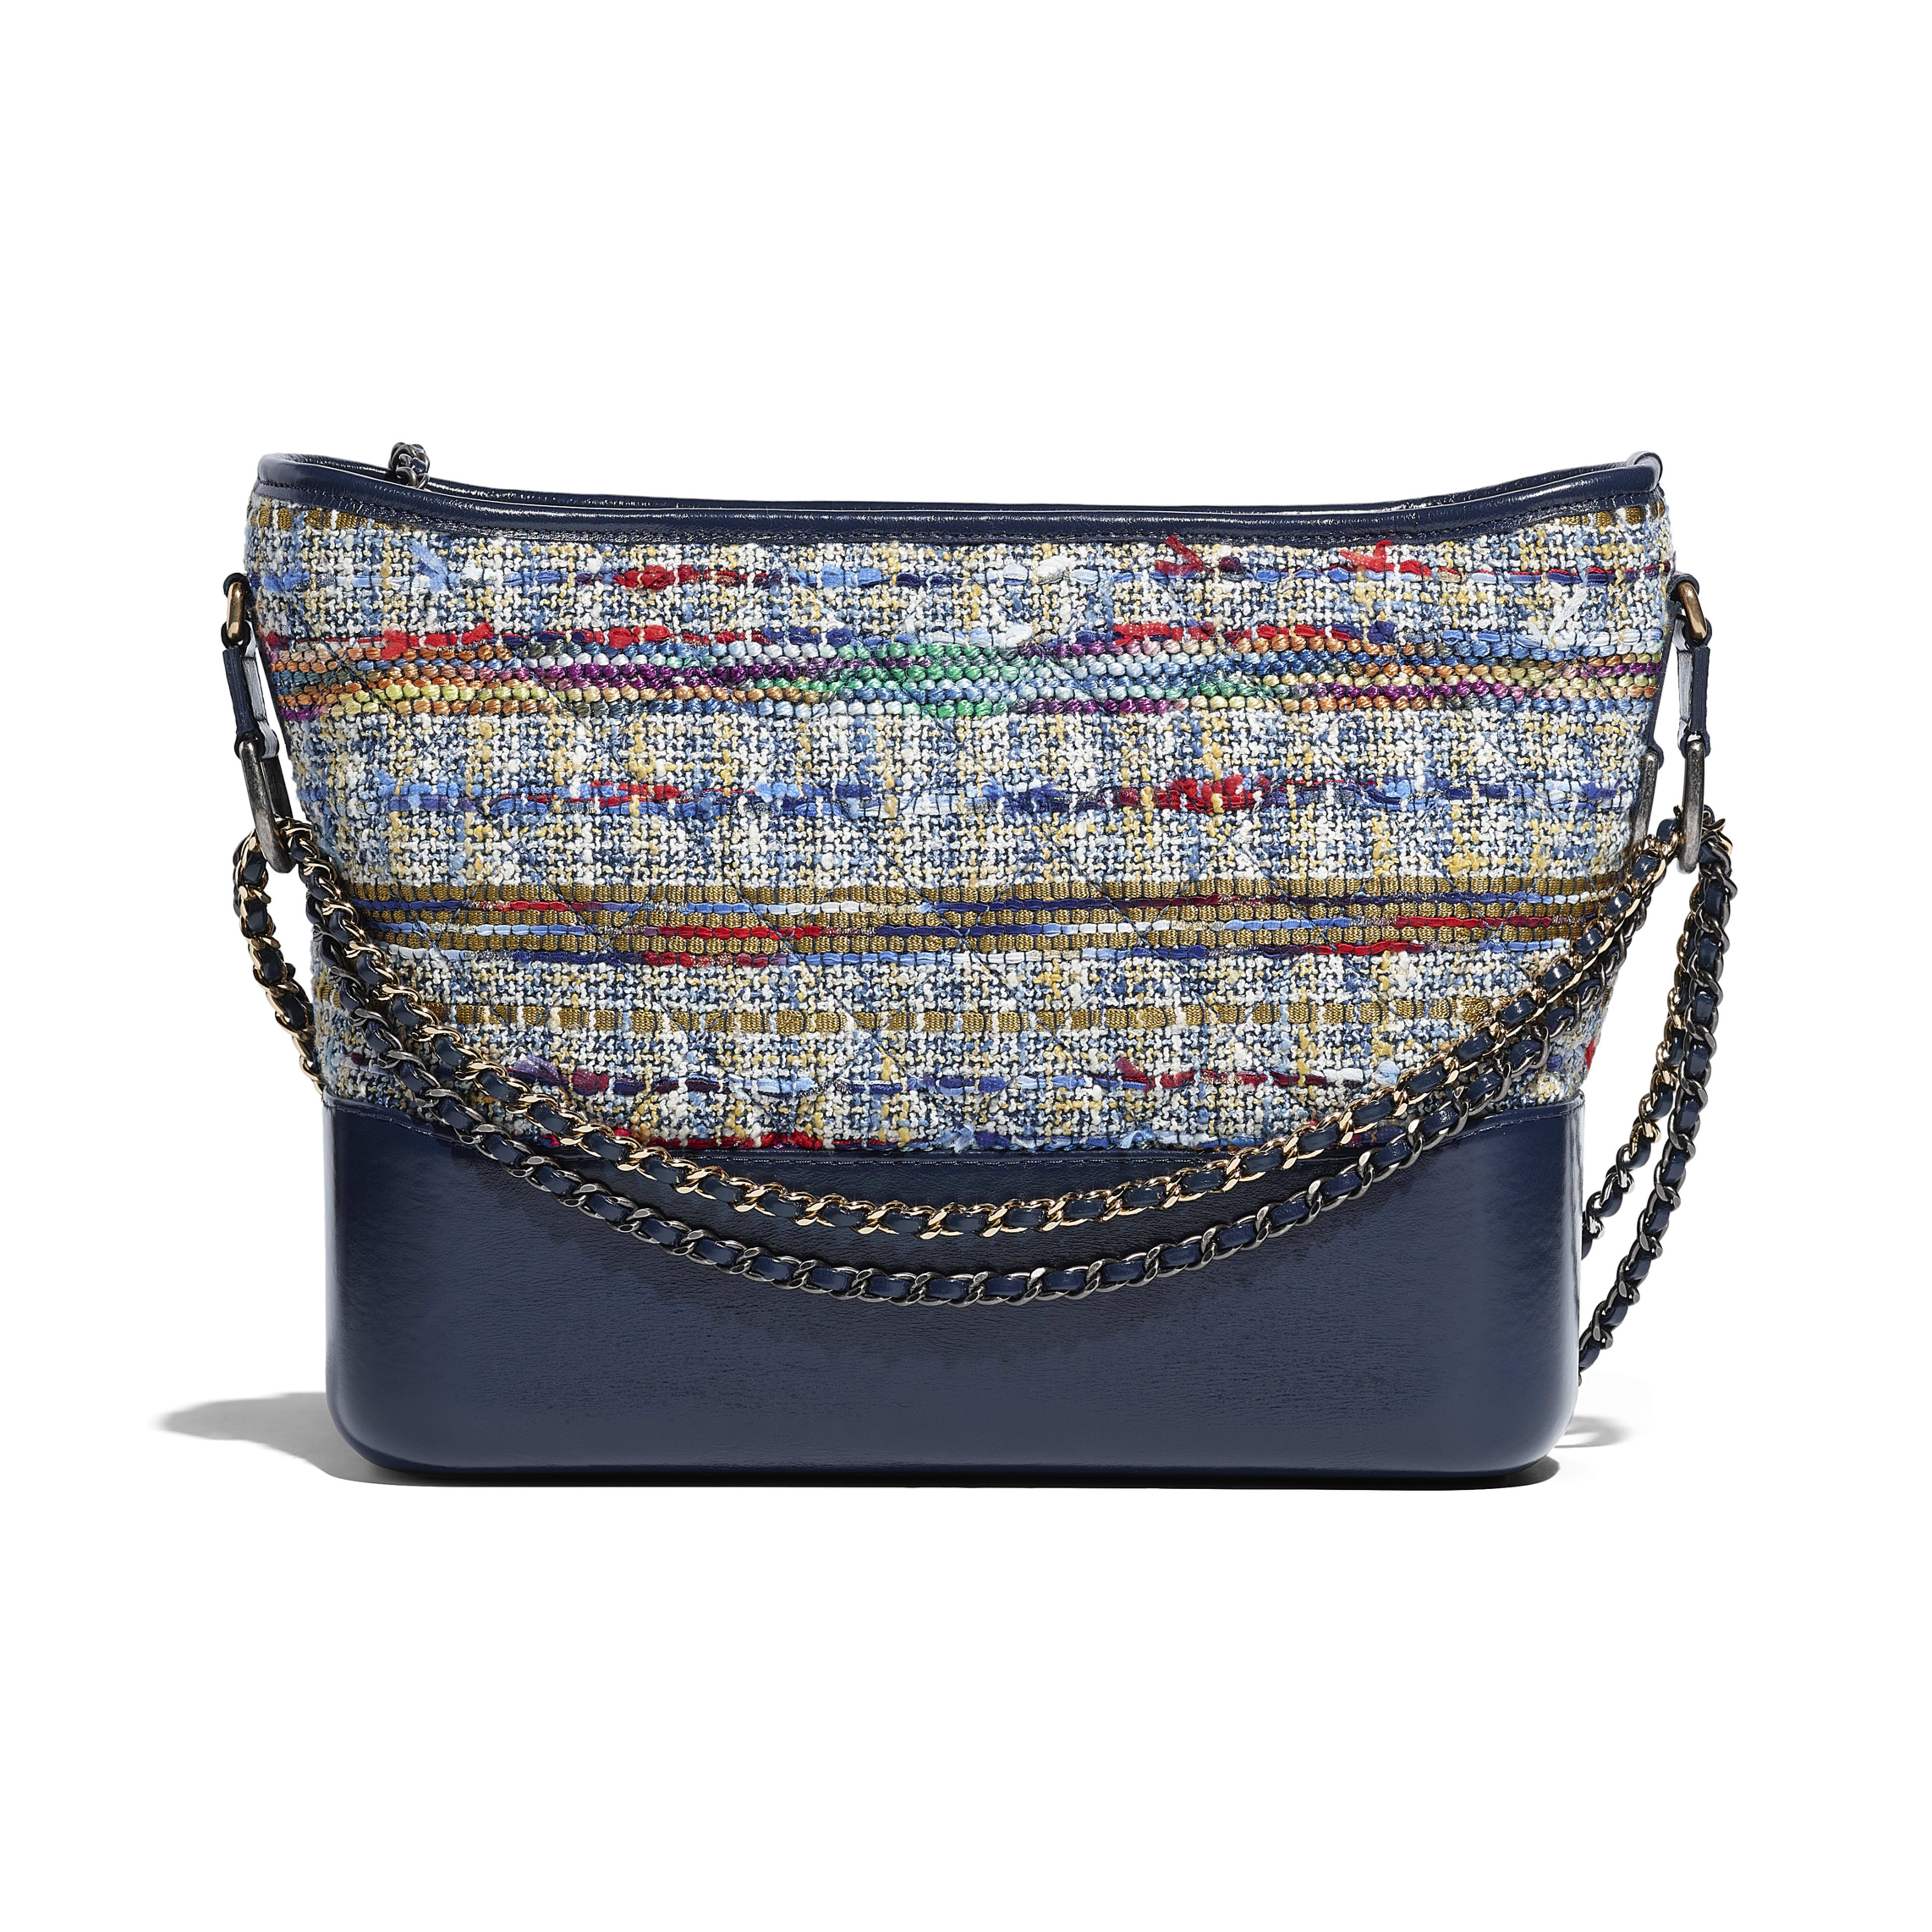 CHANEL'S GABRIELLE Hobo Bag Tweed, Calfskin, Silver-Tone & Gold-Tone Metal Blue, Gold, Red, White & Navy Blue -                                       view 2 - see full sized version